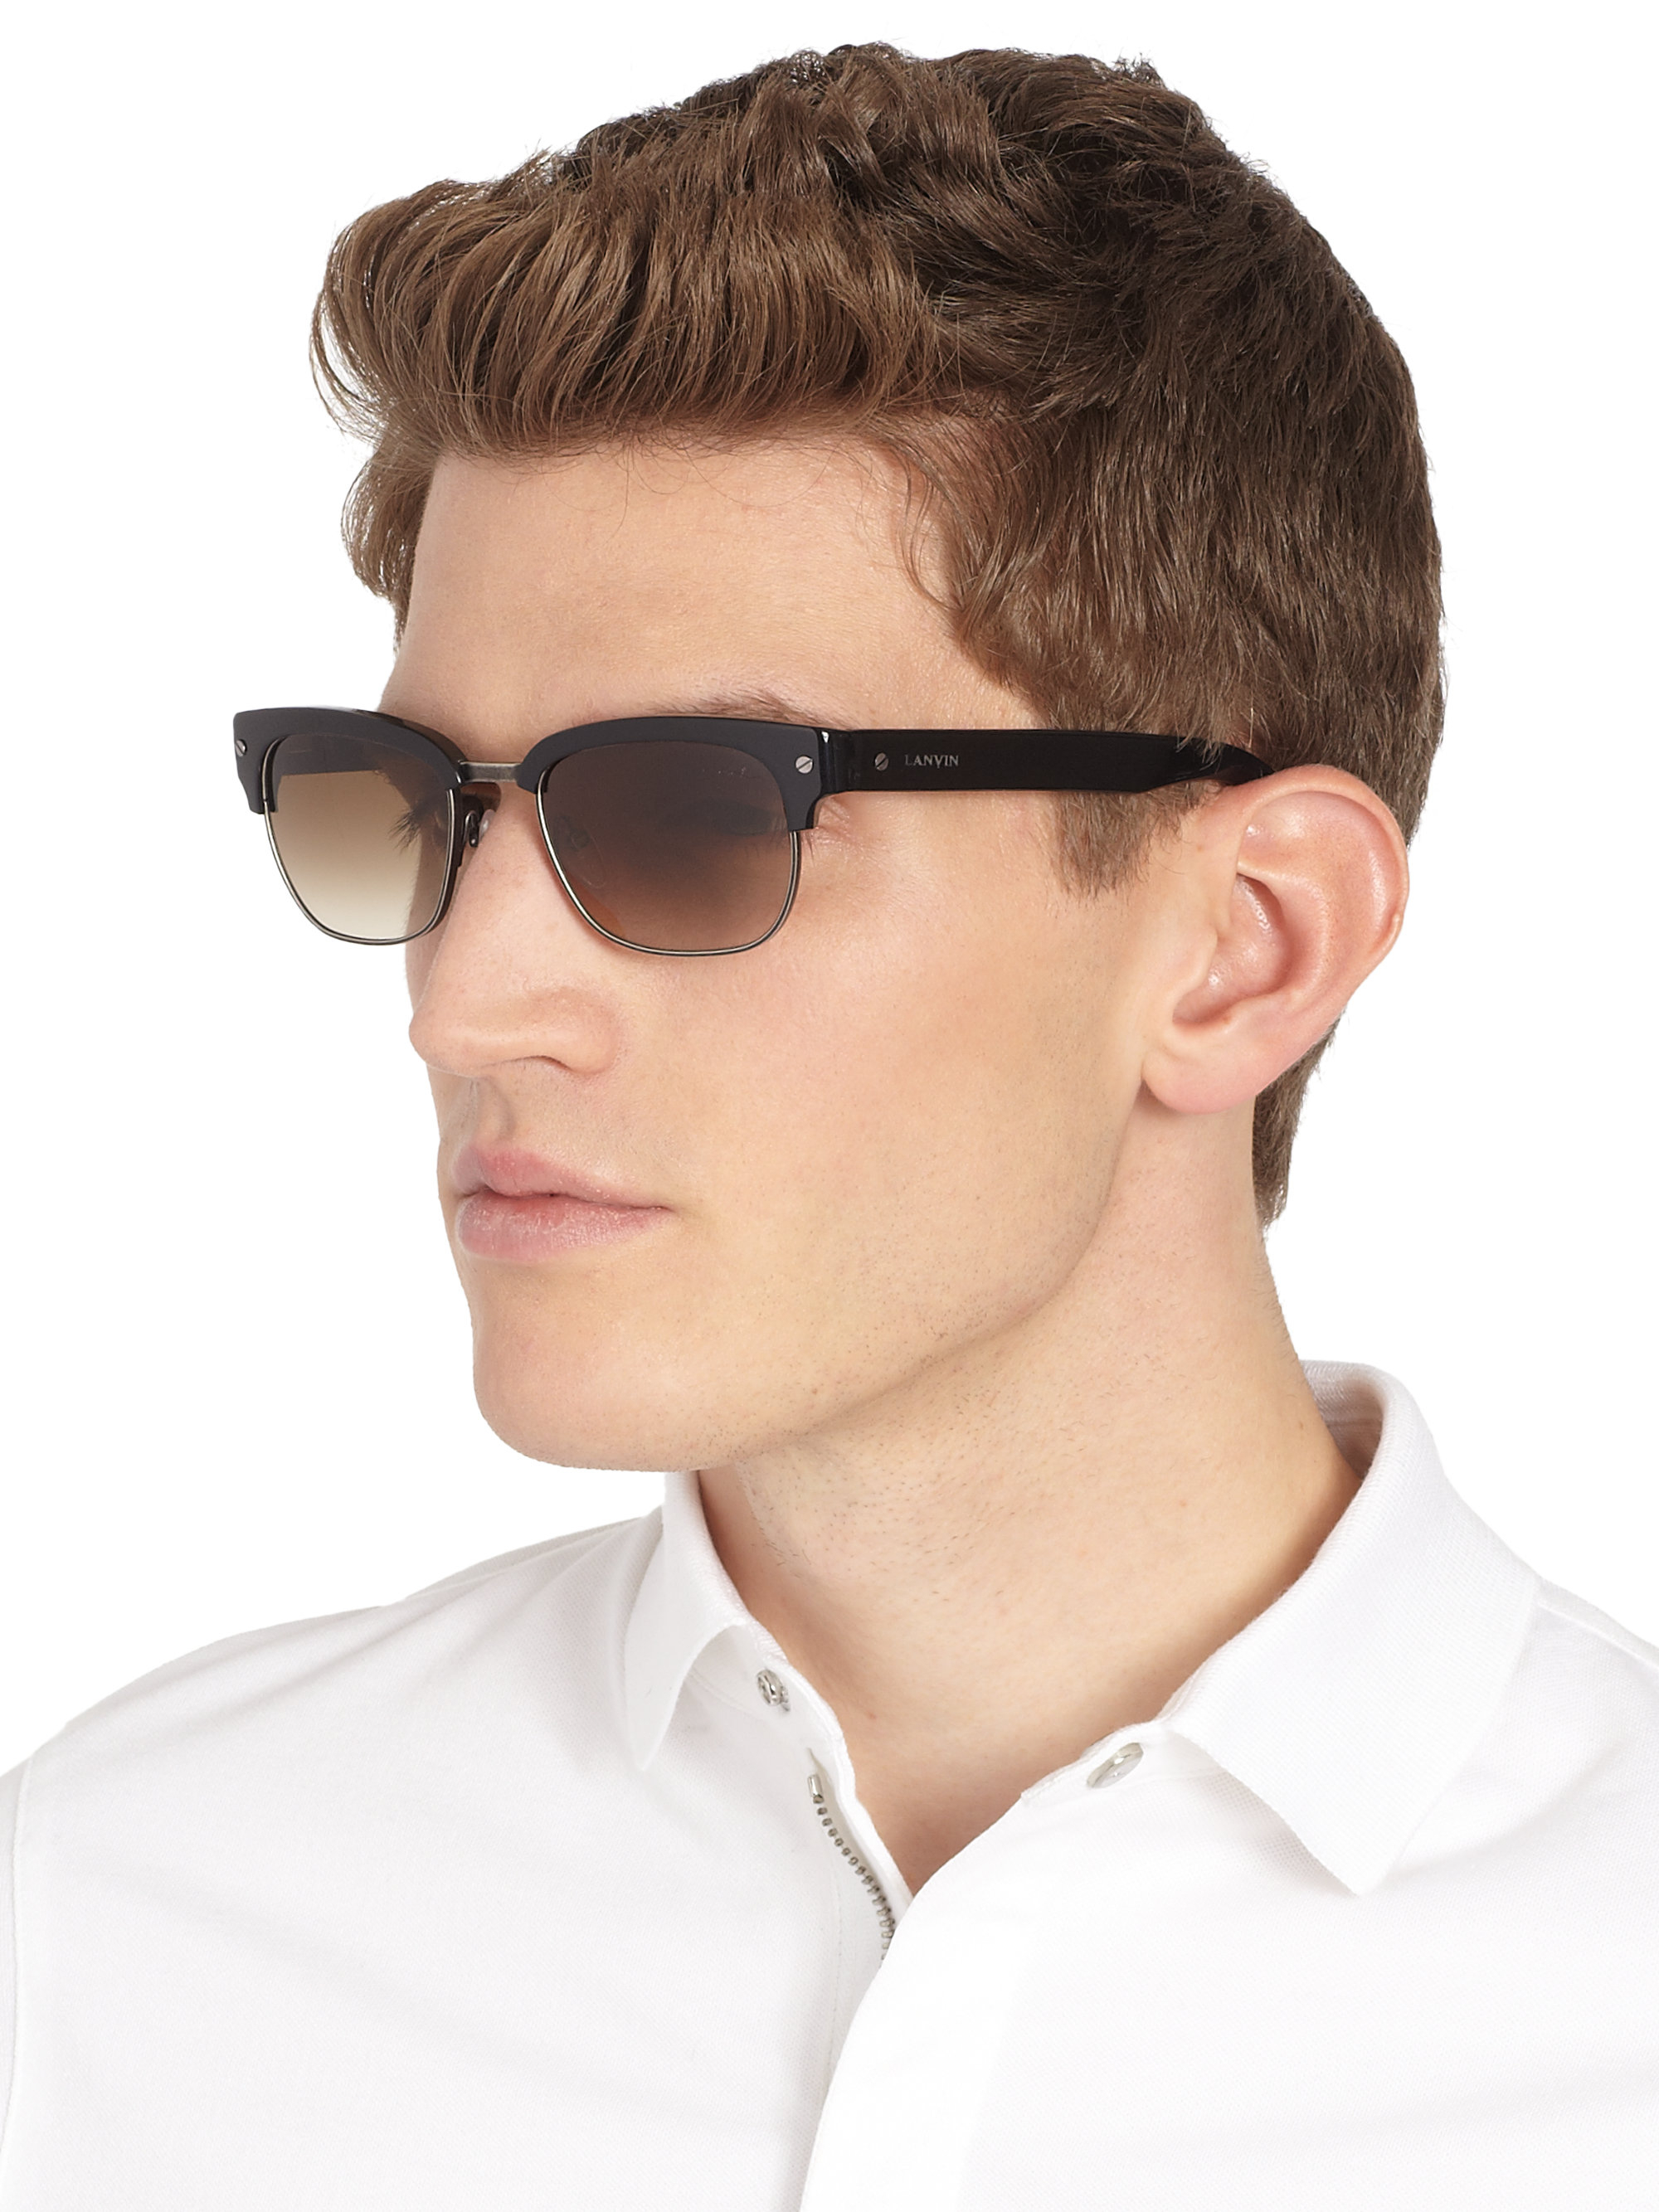 Black Clubmaster Sunglasses  lanvin square shaped clubmaster sunglasses in black for men lyst